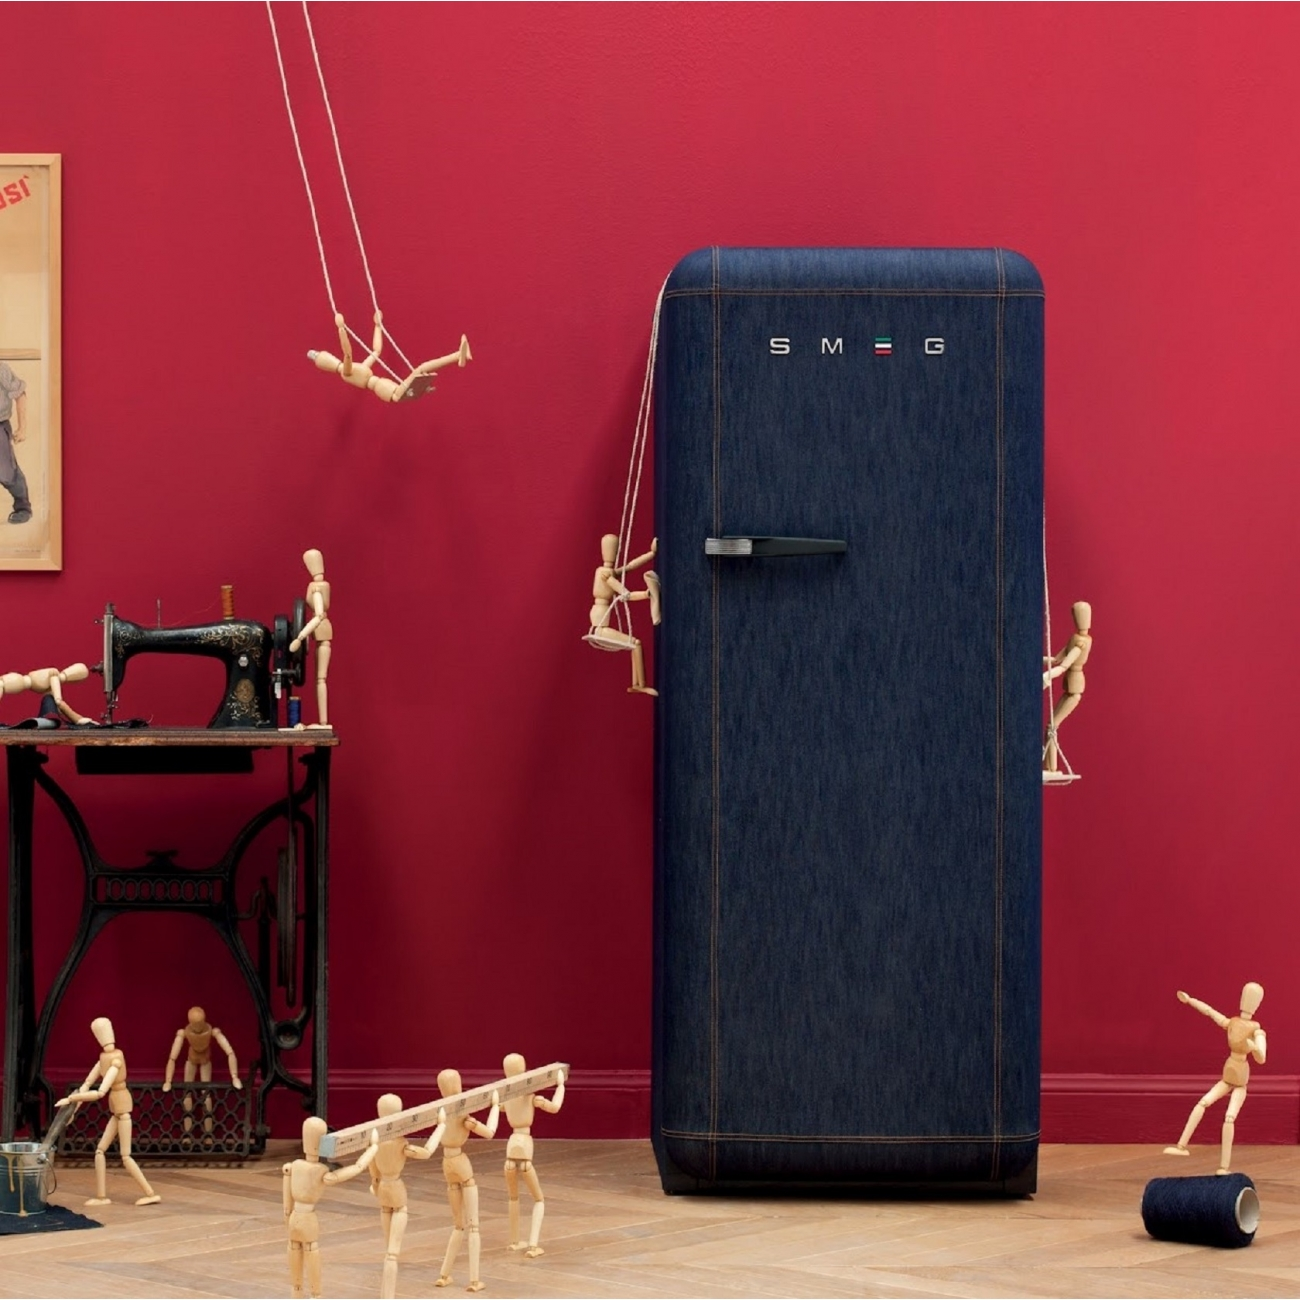 Smeg Fridge Blu Denim 50 S Retro Style Tattahome